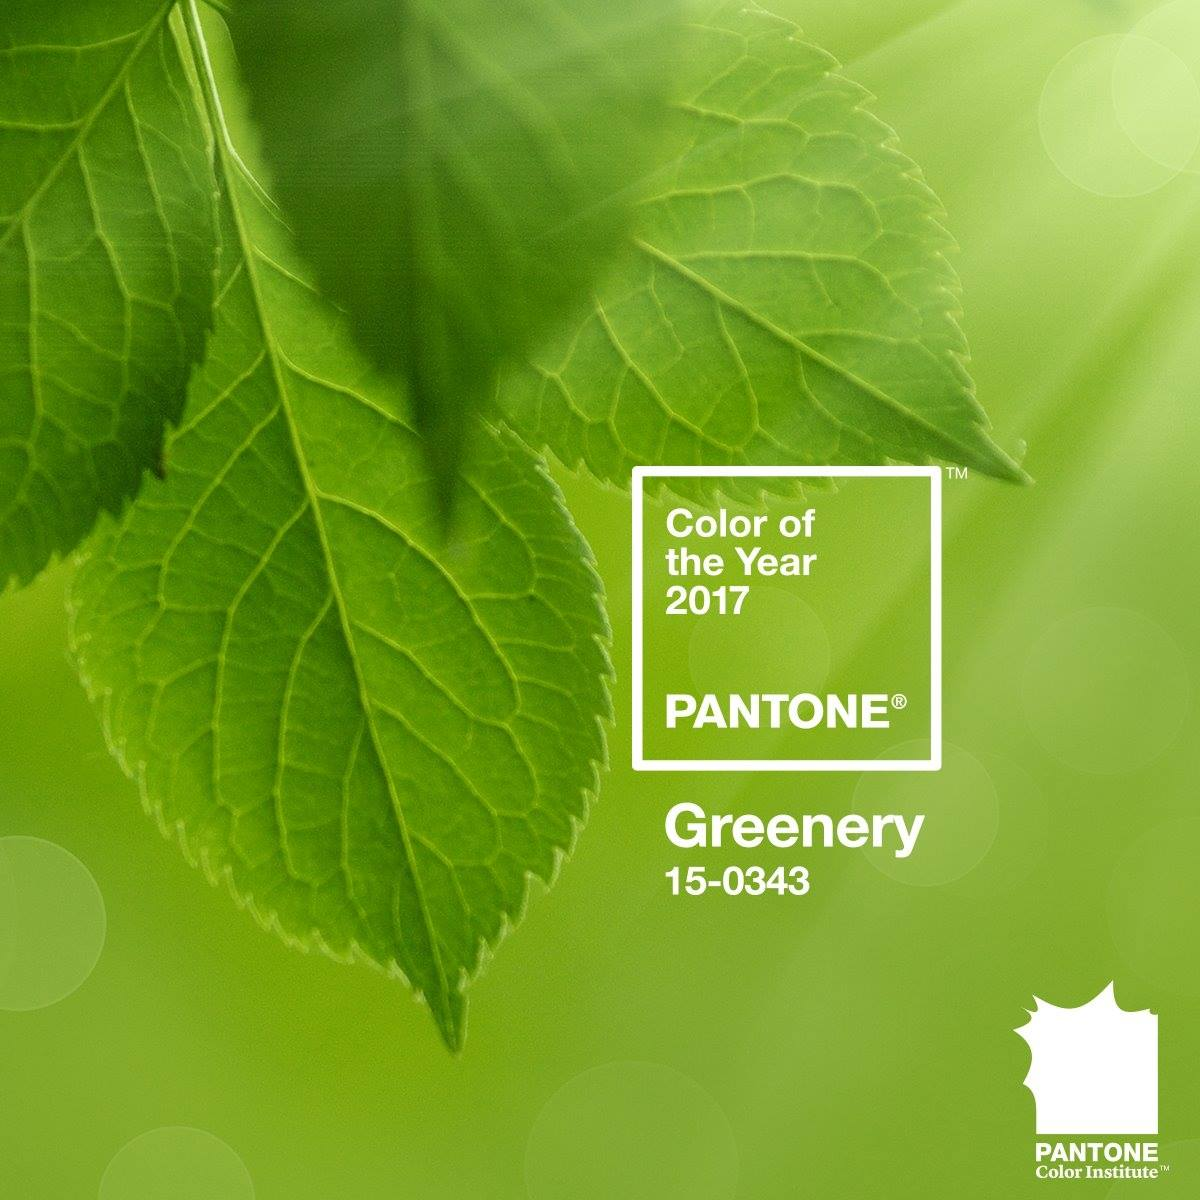 PANTONE Announces the 2017 Color of the Year, Greenery